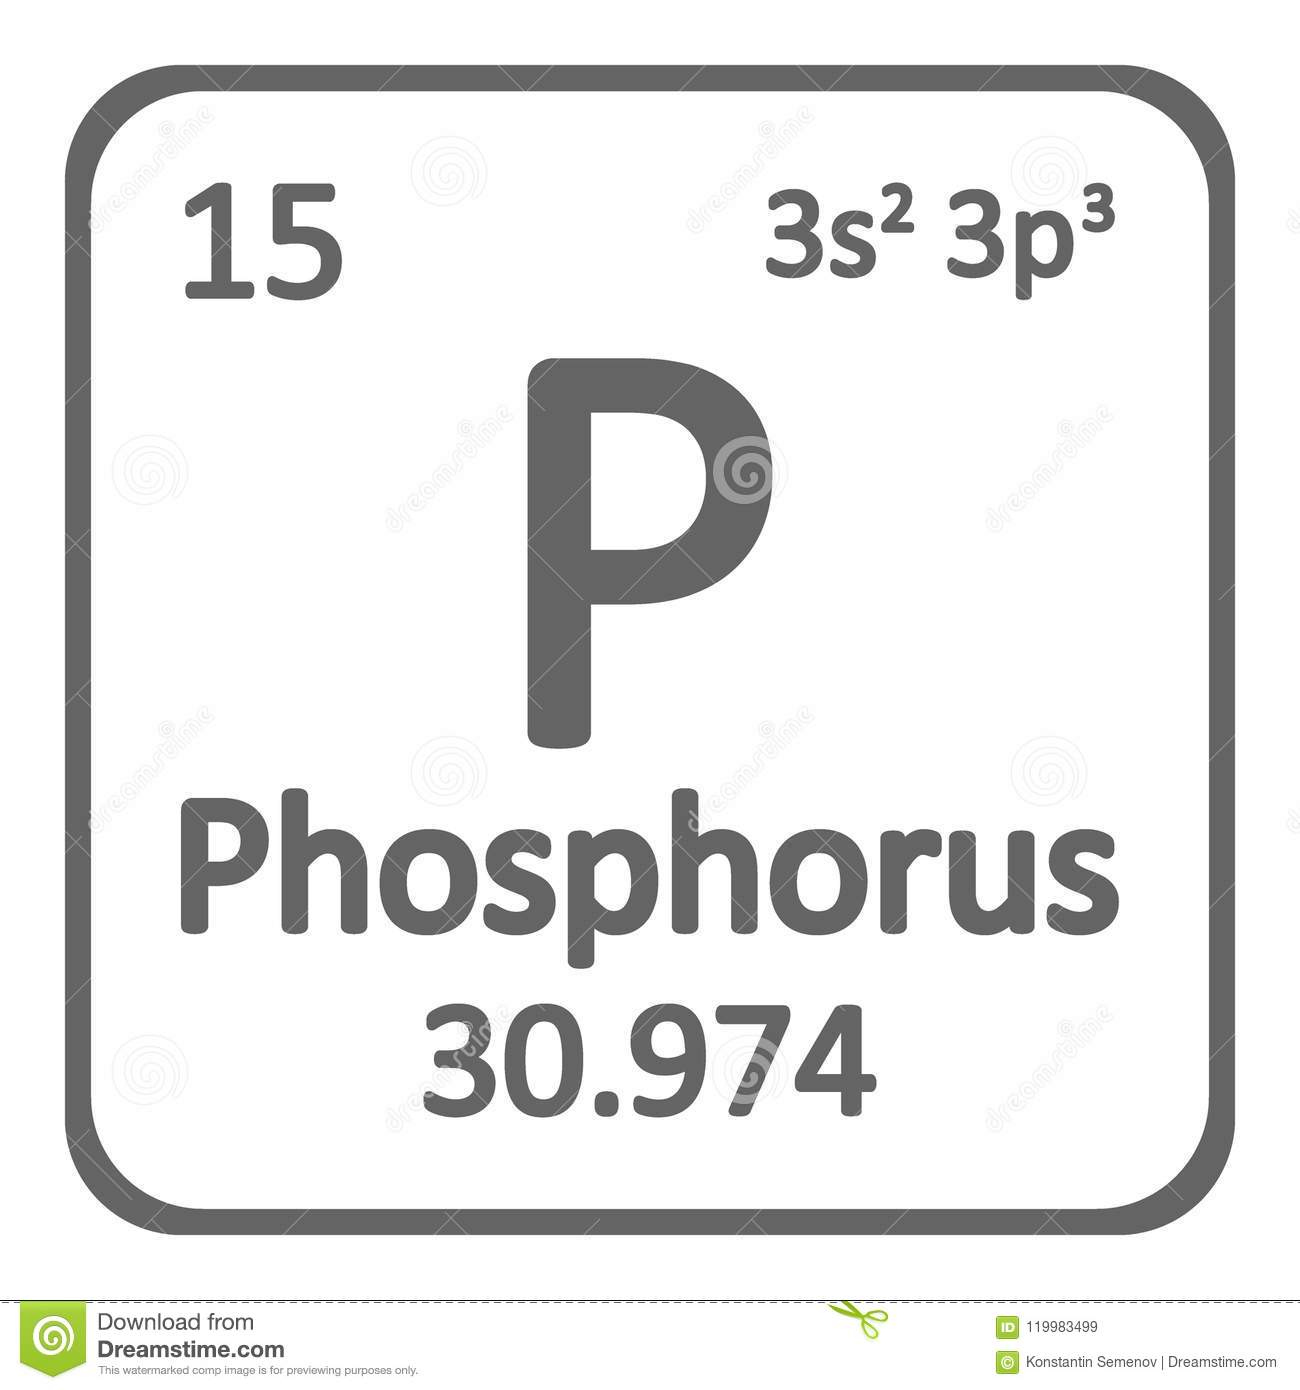 Periodic table element phosphorus icon stock illustration periodic table element phosphorus icon urtaz Images